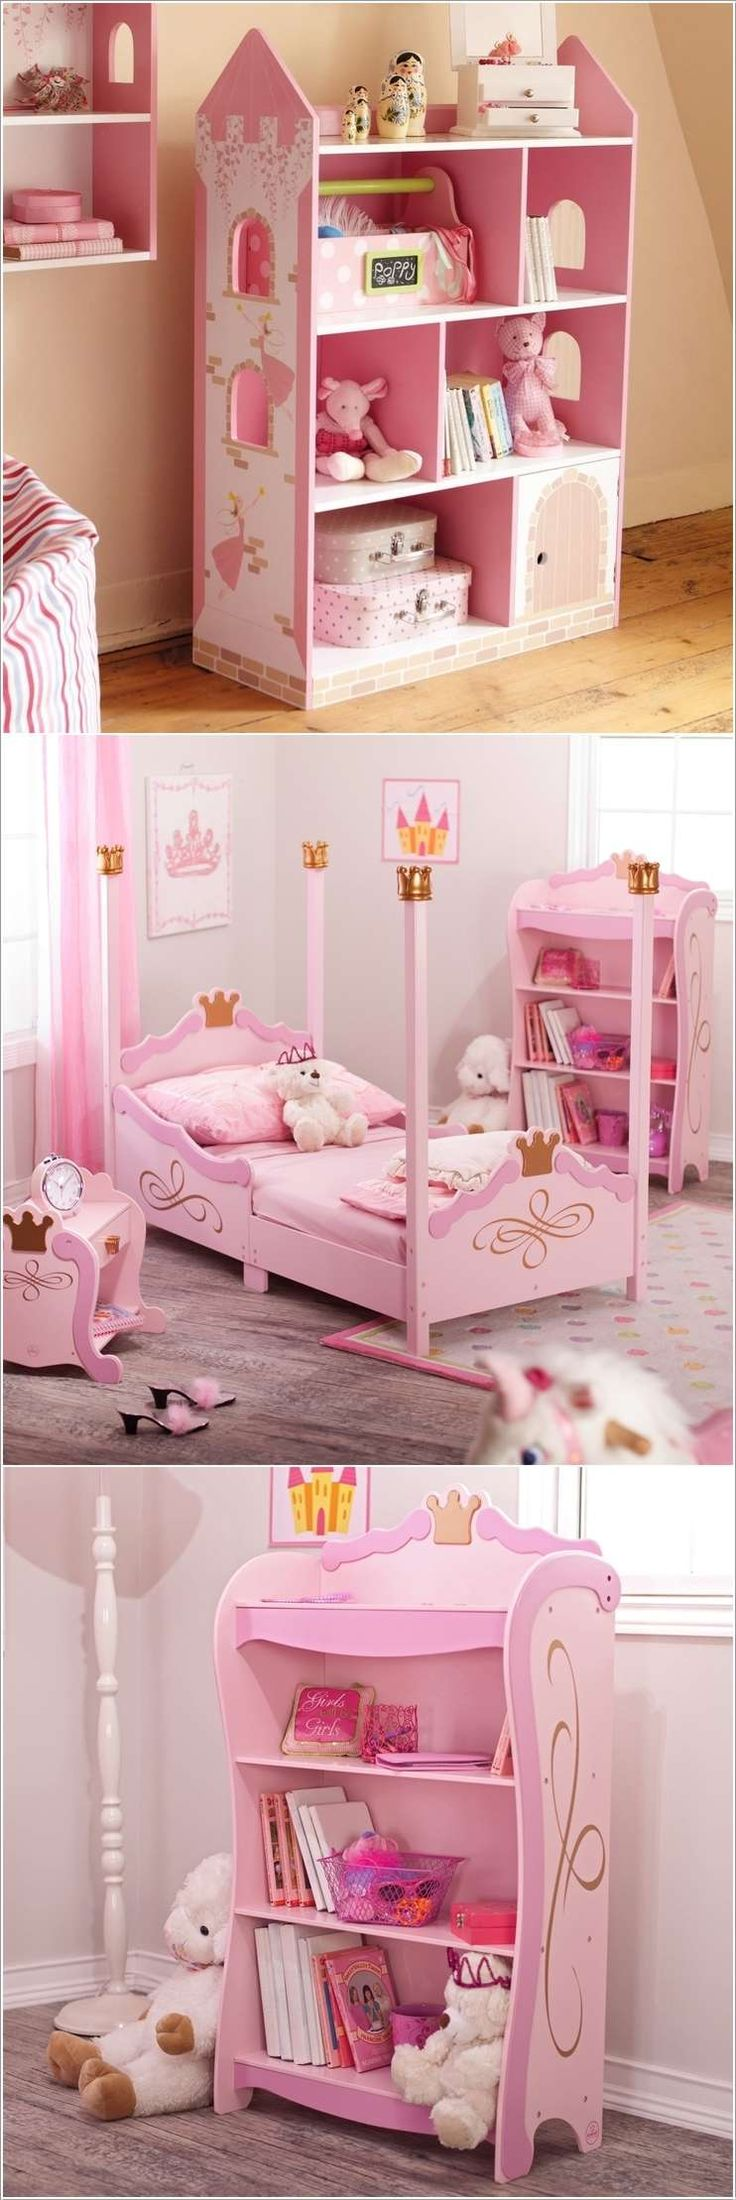 Find This Pin And More On Kid Rooms